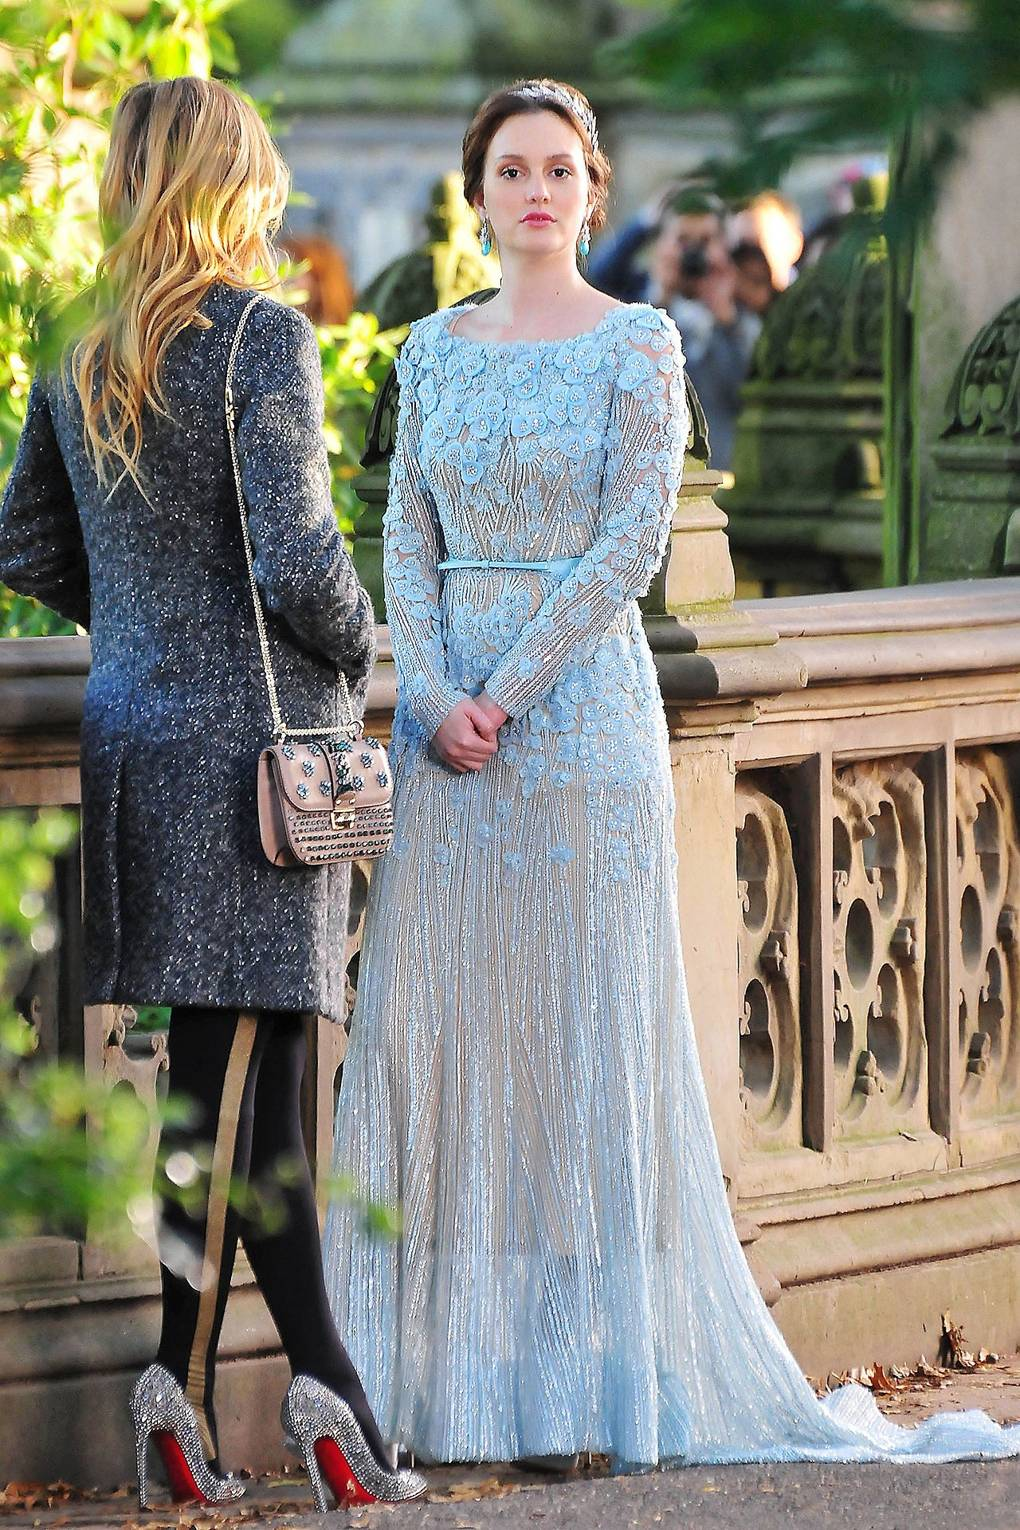 Best Wedding Dresses In Movies & From TV - Pictures | Glamour UK